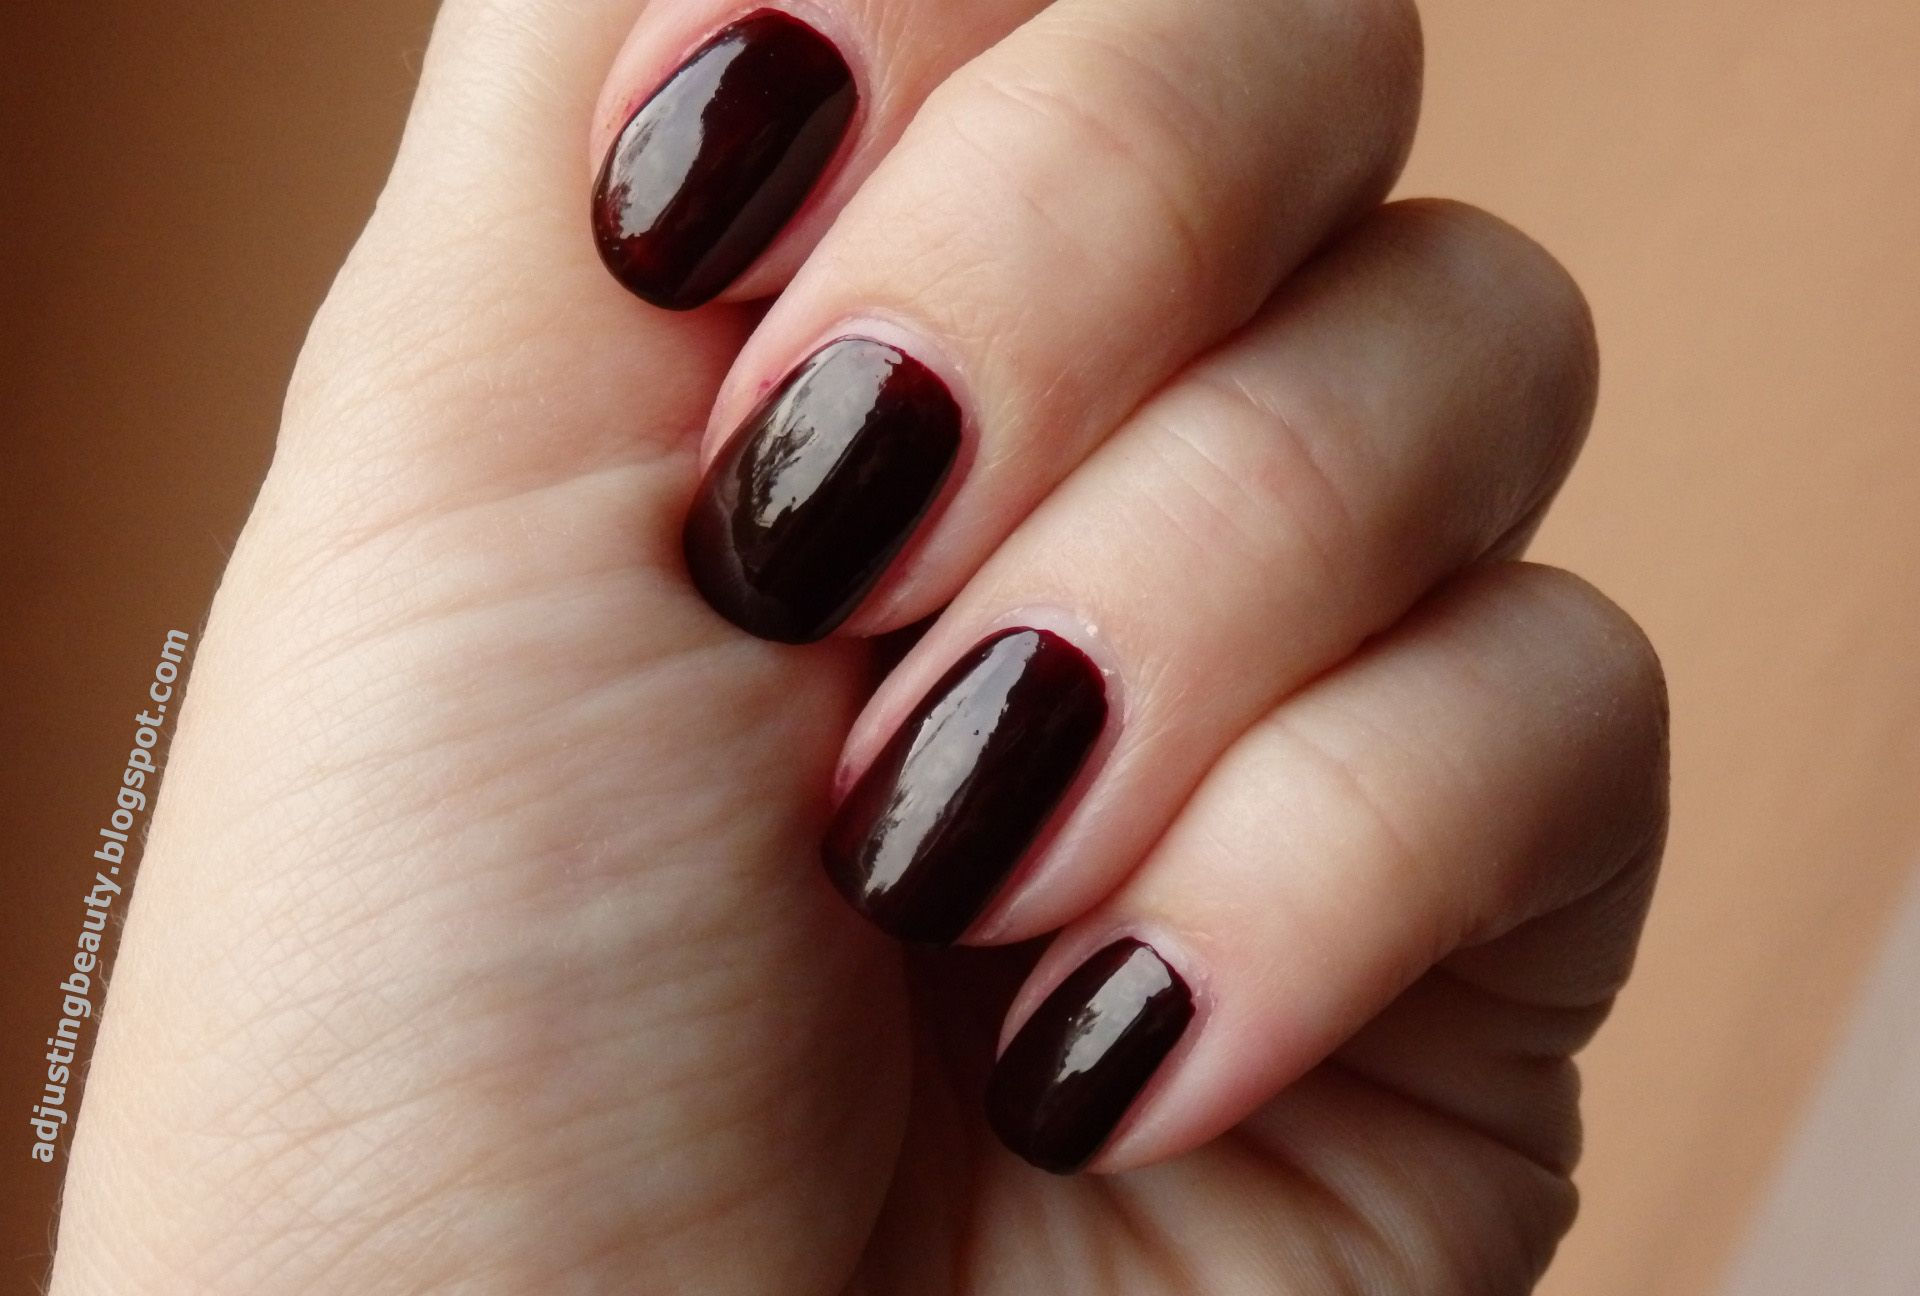 Maybelline Colorama in shade 261 (burgundy, red wine, oxblood, dark ...